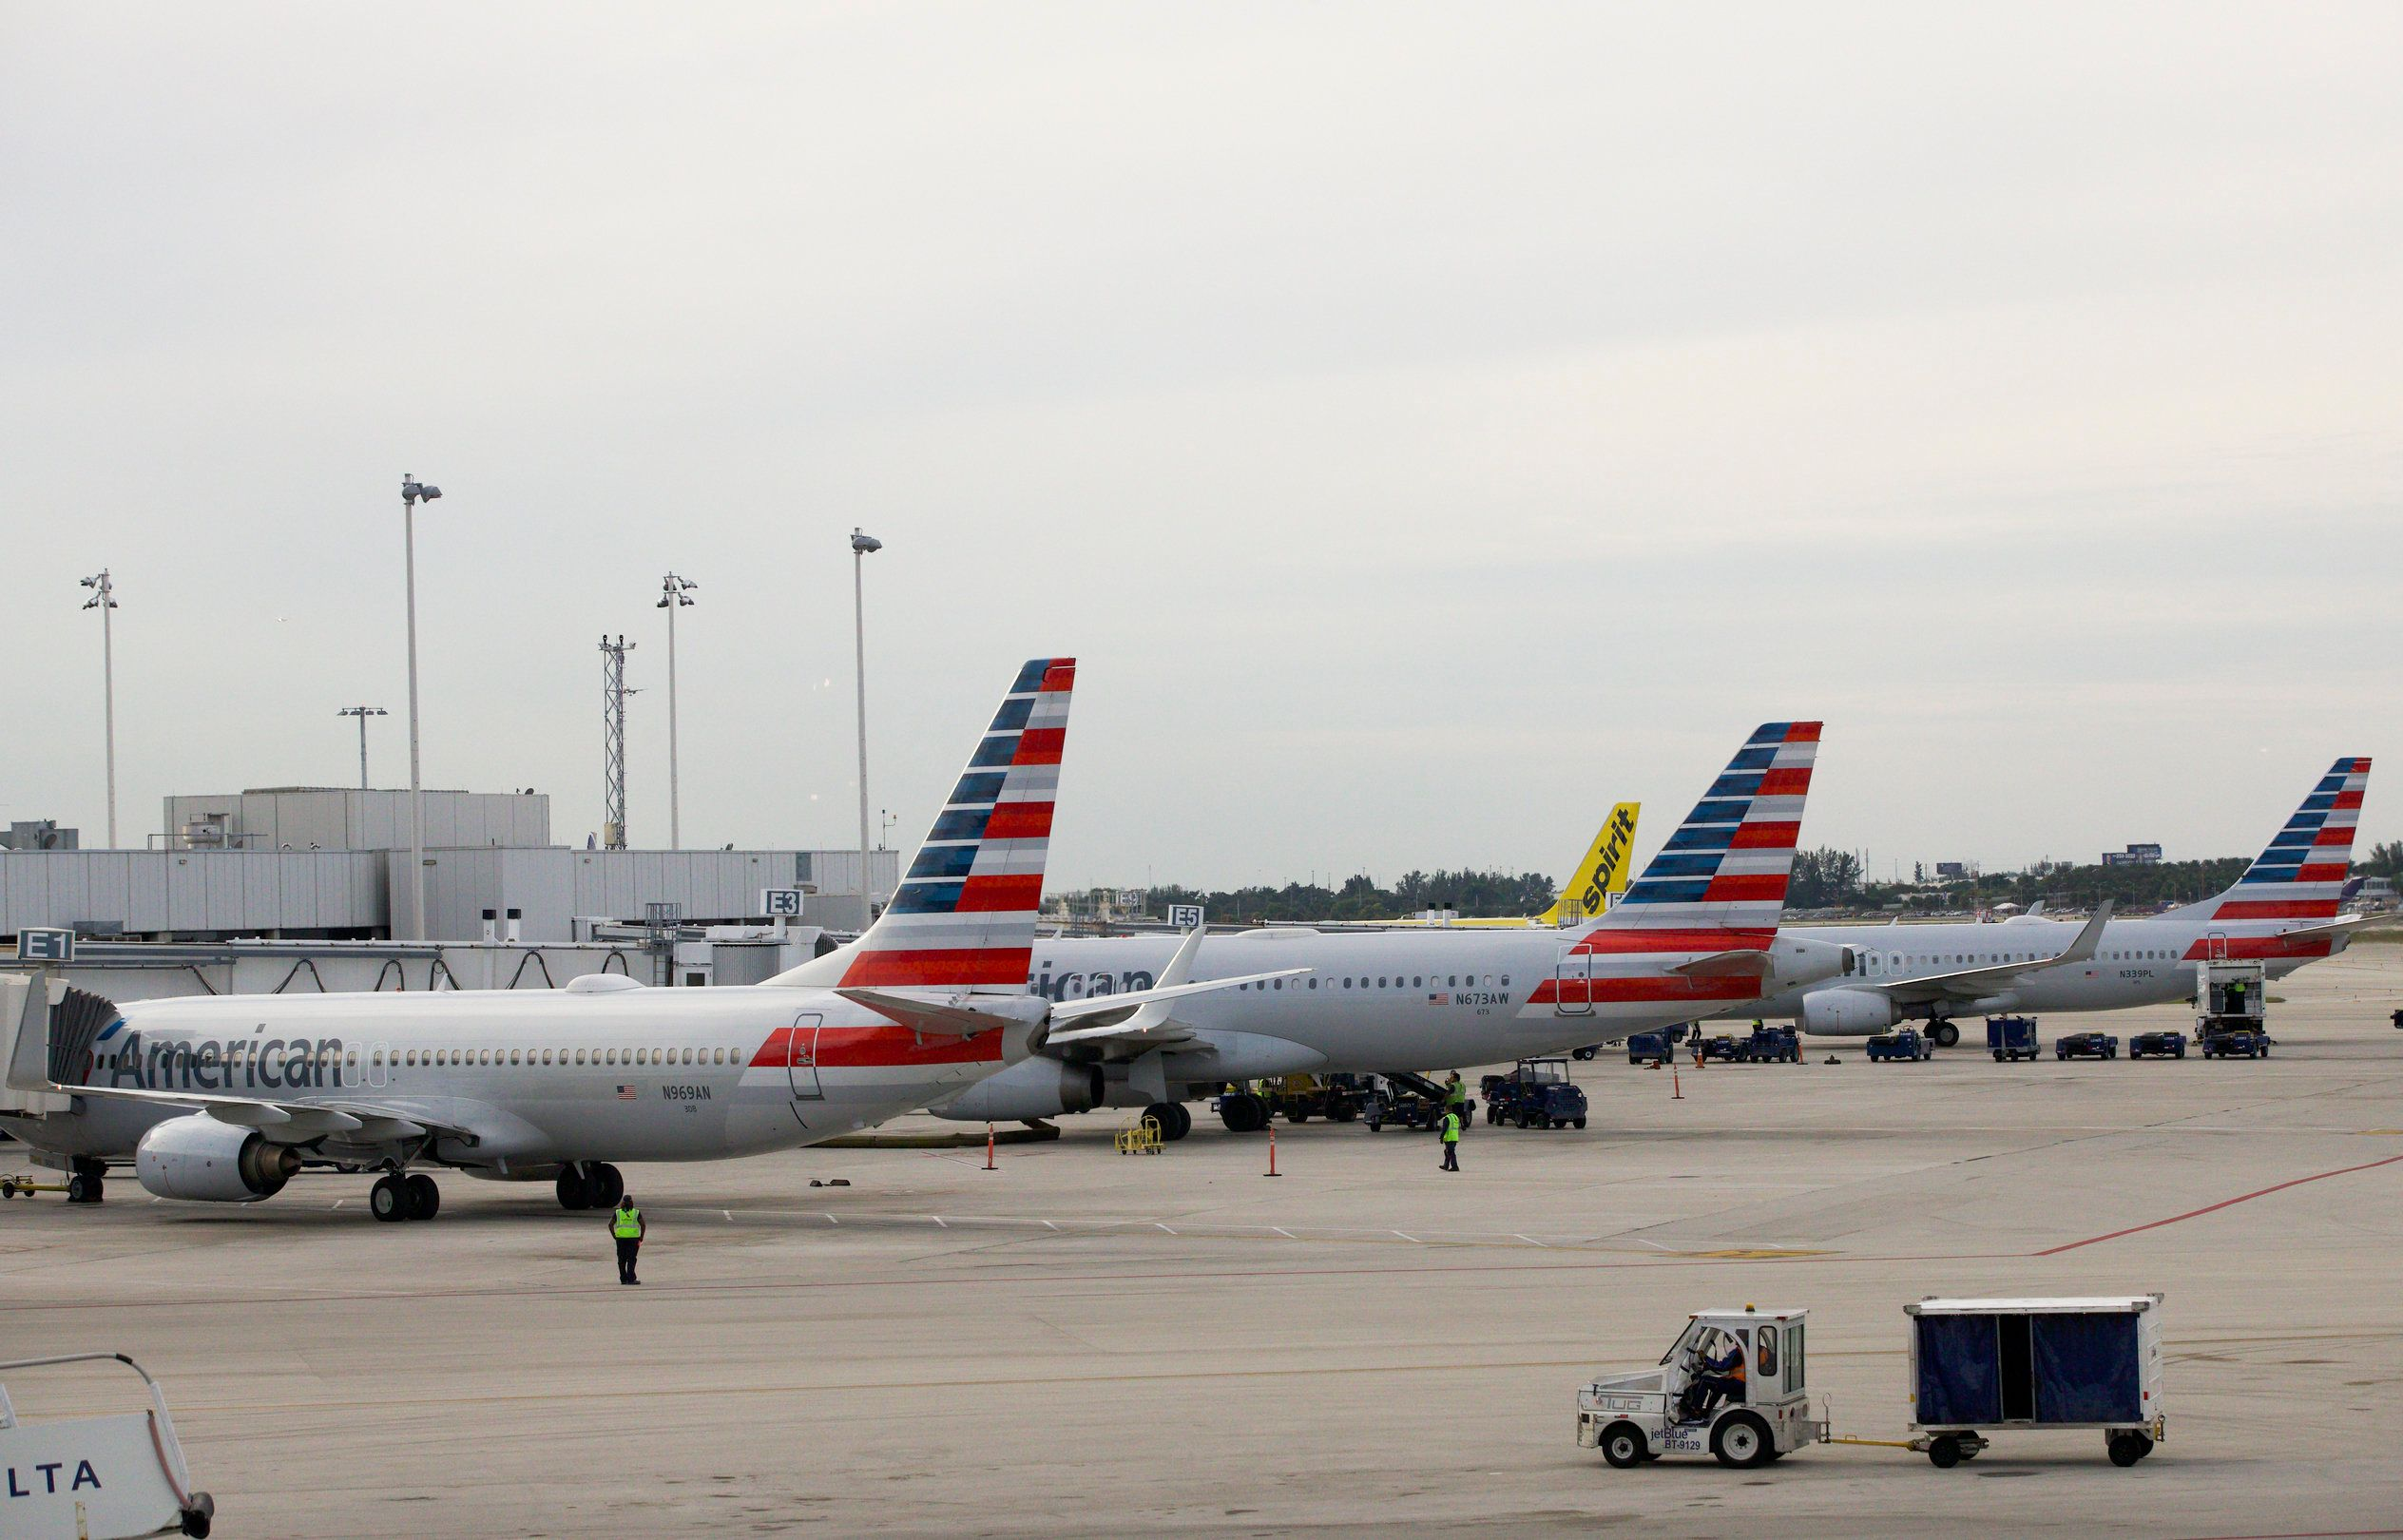 In this Thursday, Nov. 29, 2018 photo, American Airlines planes are parked at the gates at Fort Lauderdale–Hollywood International Airport in Fort Lauderdale, Fla. (AP Photo/Wilfredo Lee)